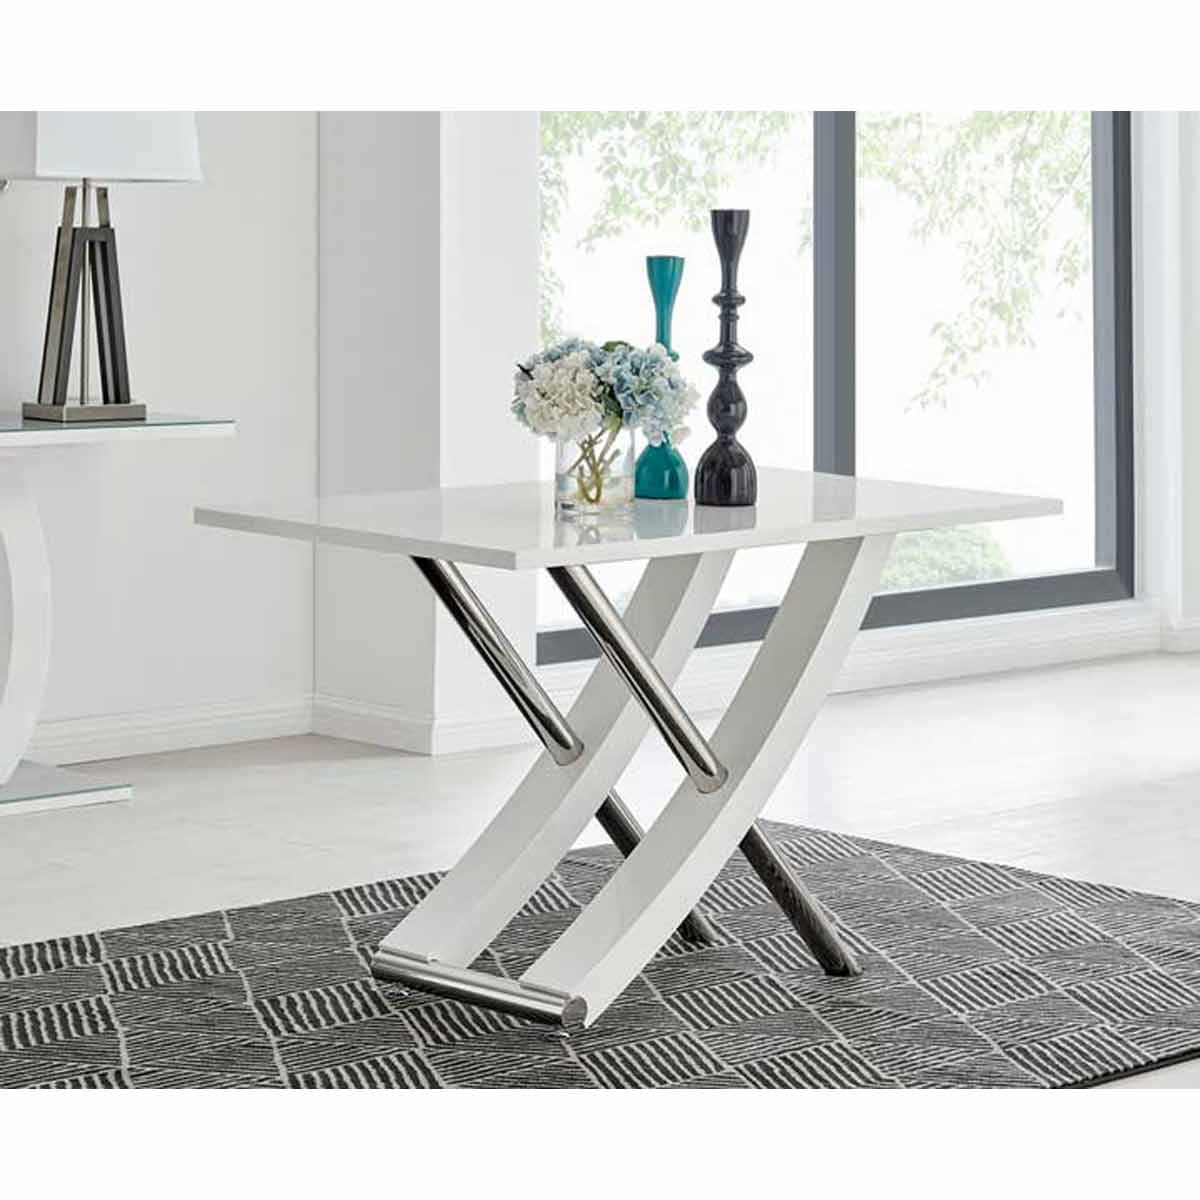 Furniture Box Mayfair 4 Seater White High Gloss And Stainless Steel Dining Table